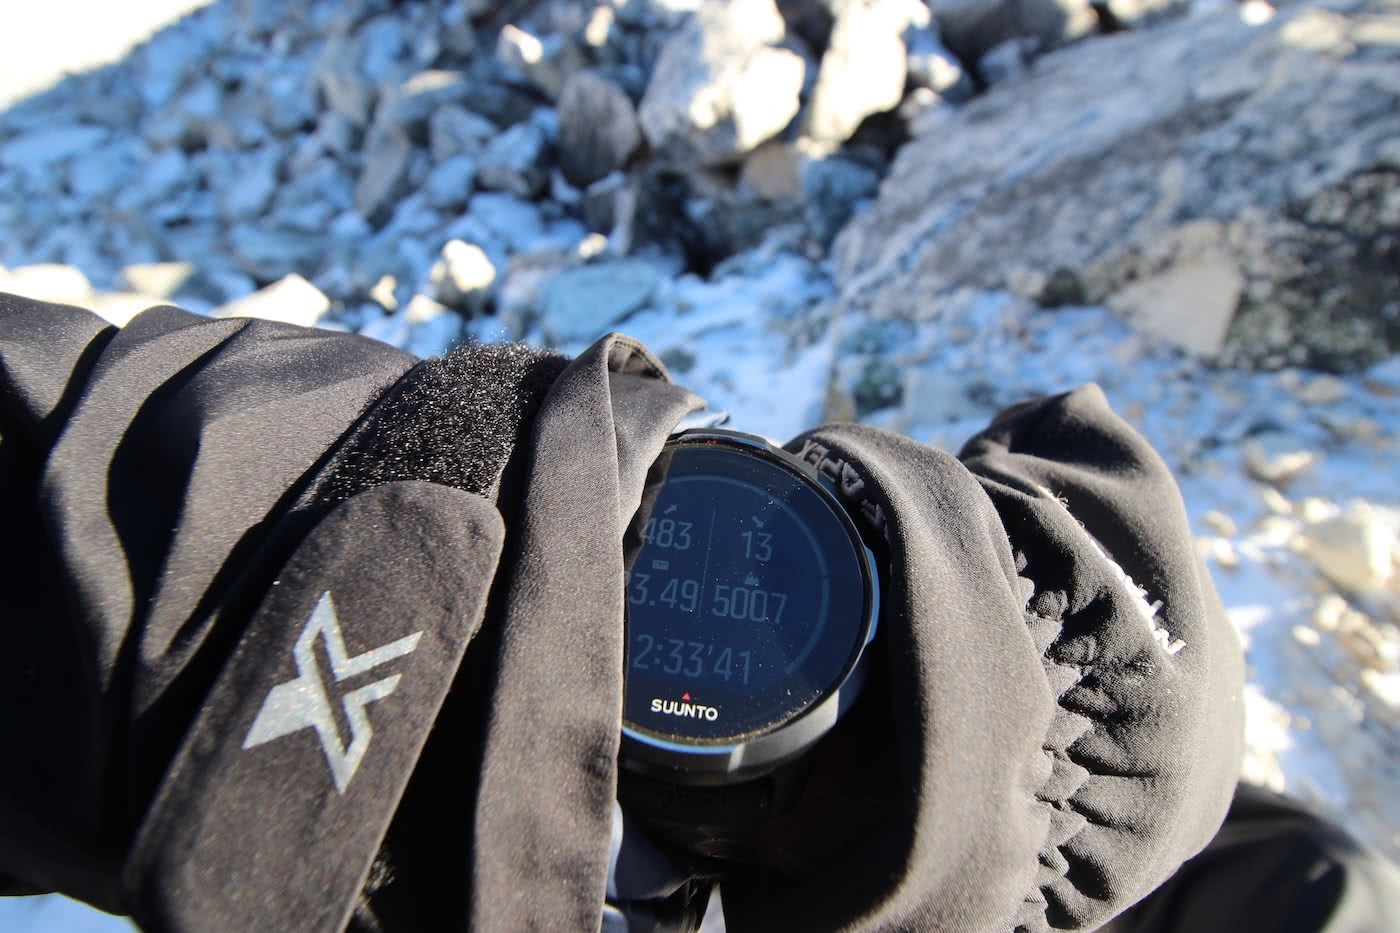 Relive The Battery Glory Days - Suunto 9 Baro // Gear Review, tim ashelford, gps watch, snow